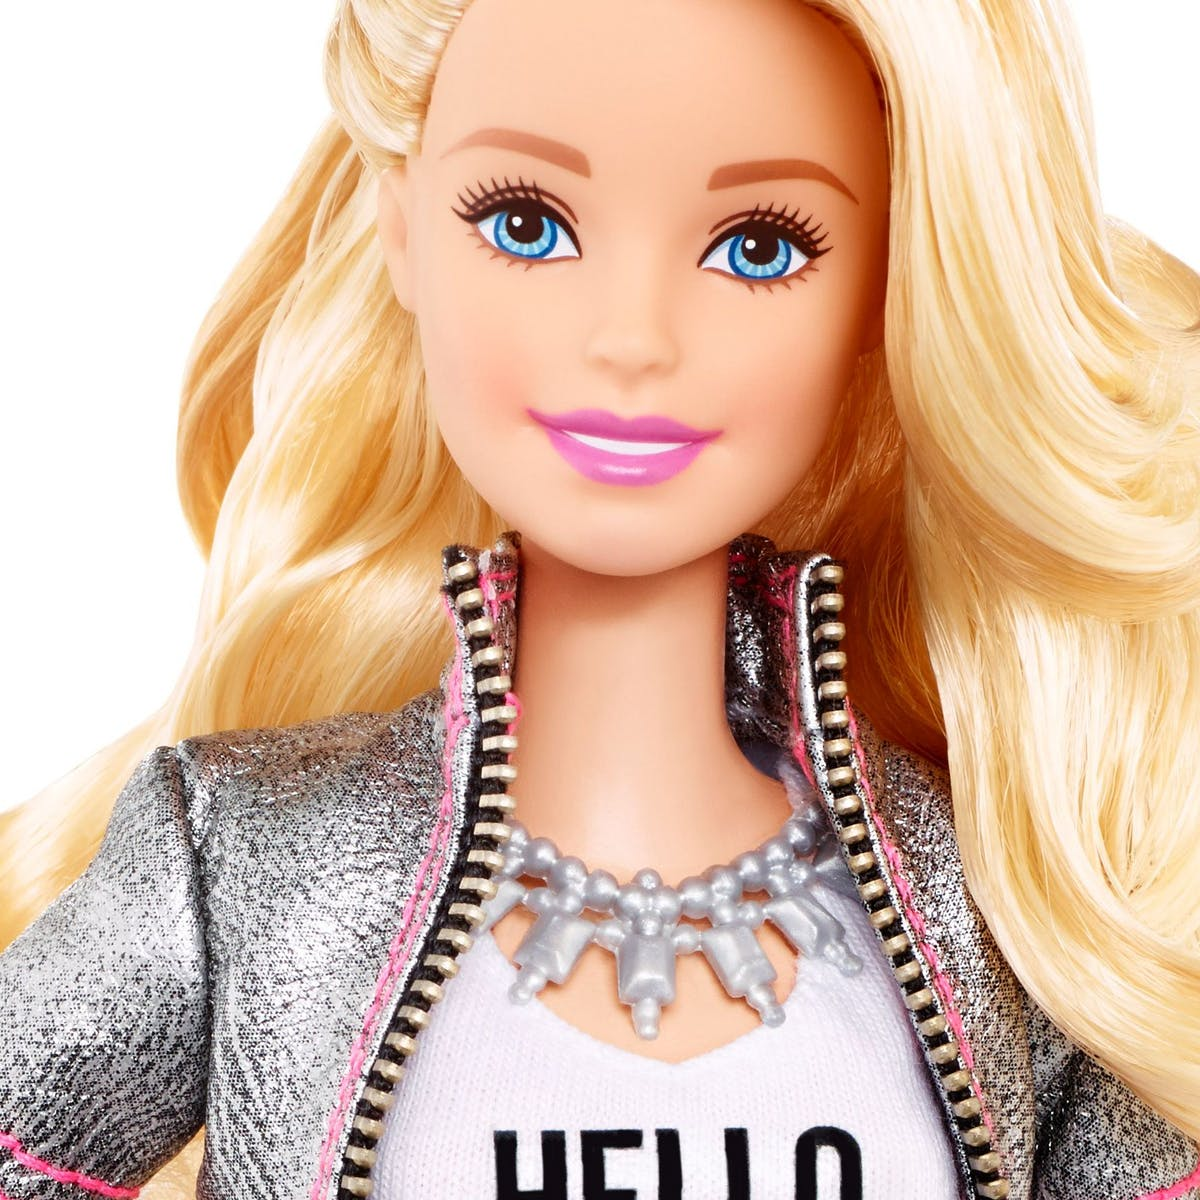 Hello Barbie, hello hackers: accessing personal data will be